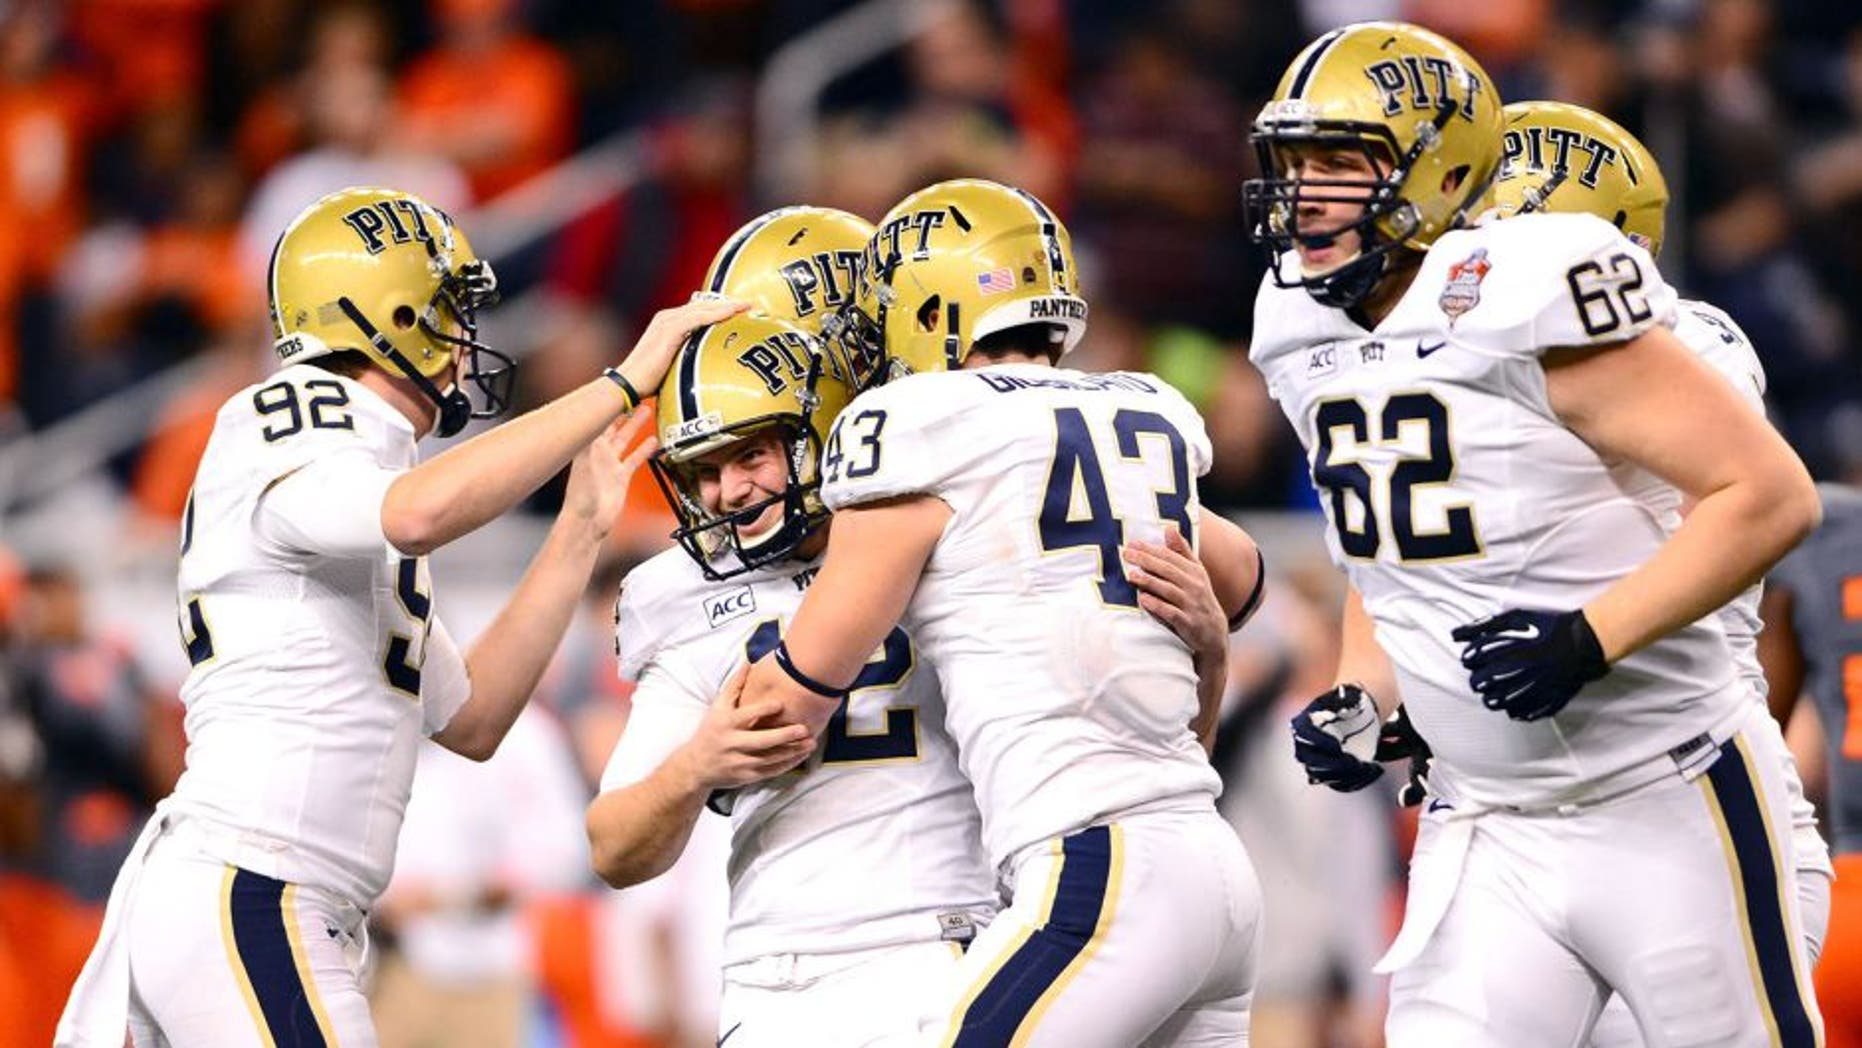 Dec 26, 2013; Detroit, MI, USA; Pittsburgh Panthers kicker Chris Blewitt (12) celebrates with teammates after kicking a field goal during the fourth quarter of the Little Caesars Pizza Bowl against the Bowling Green Falcons at Ford Field. Pittsburgh Panthers defeated Bowling Green Falcons 30-27. Mandatory Credit: Andrew Weber-USA TODAY Sports